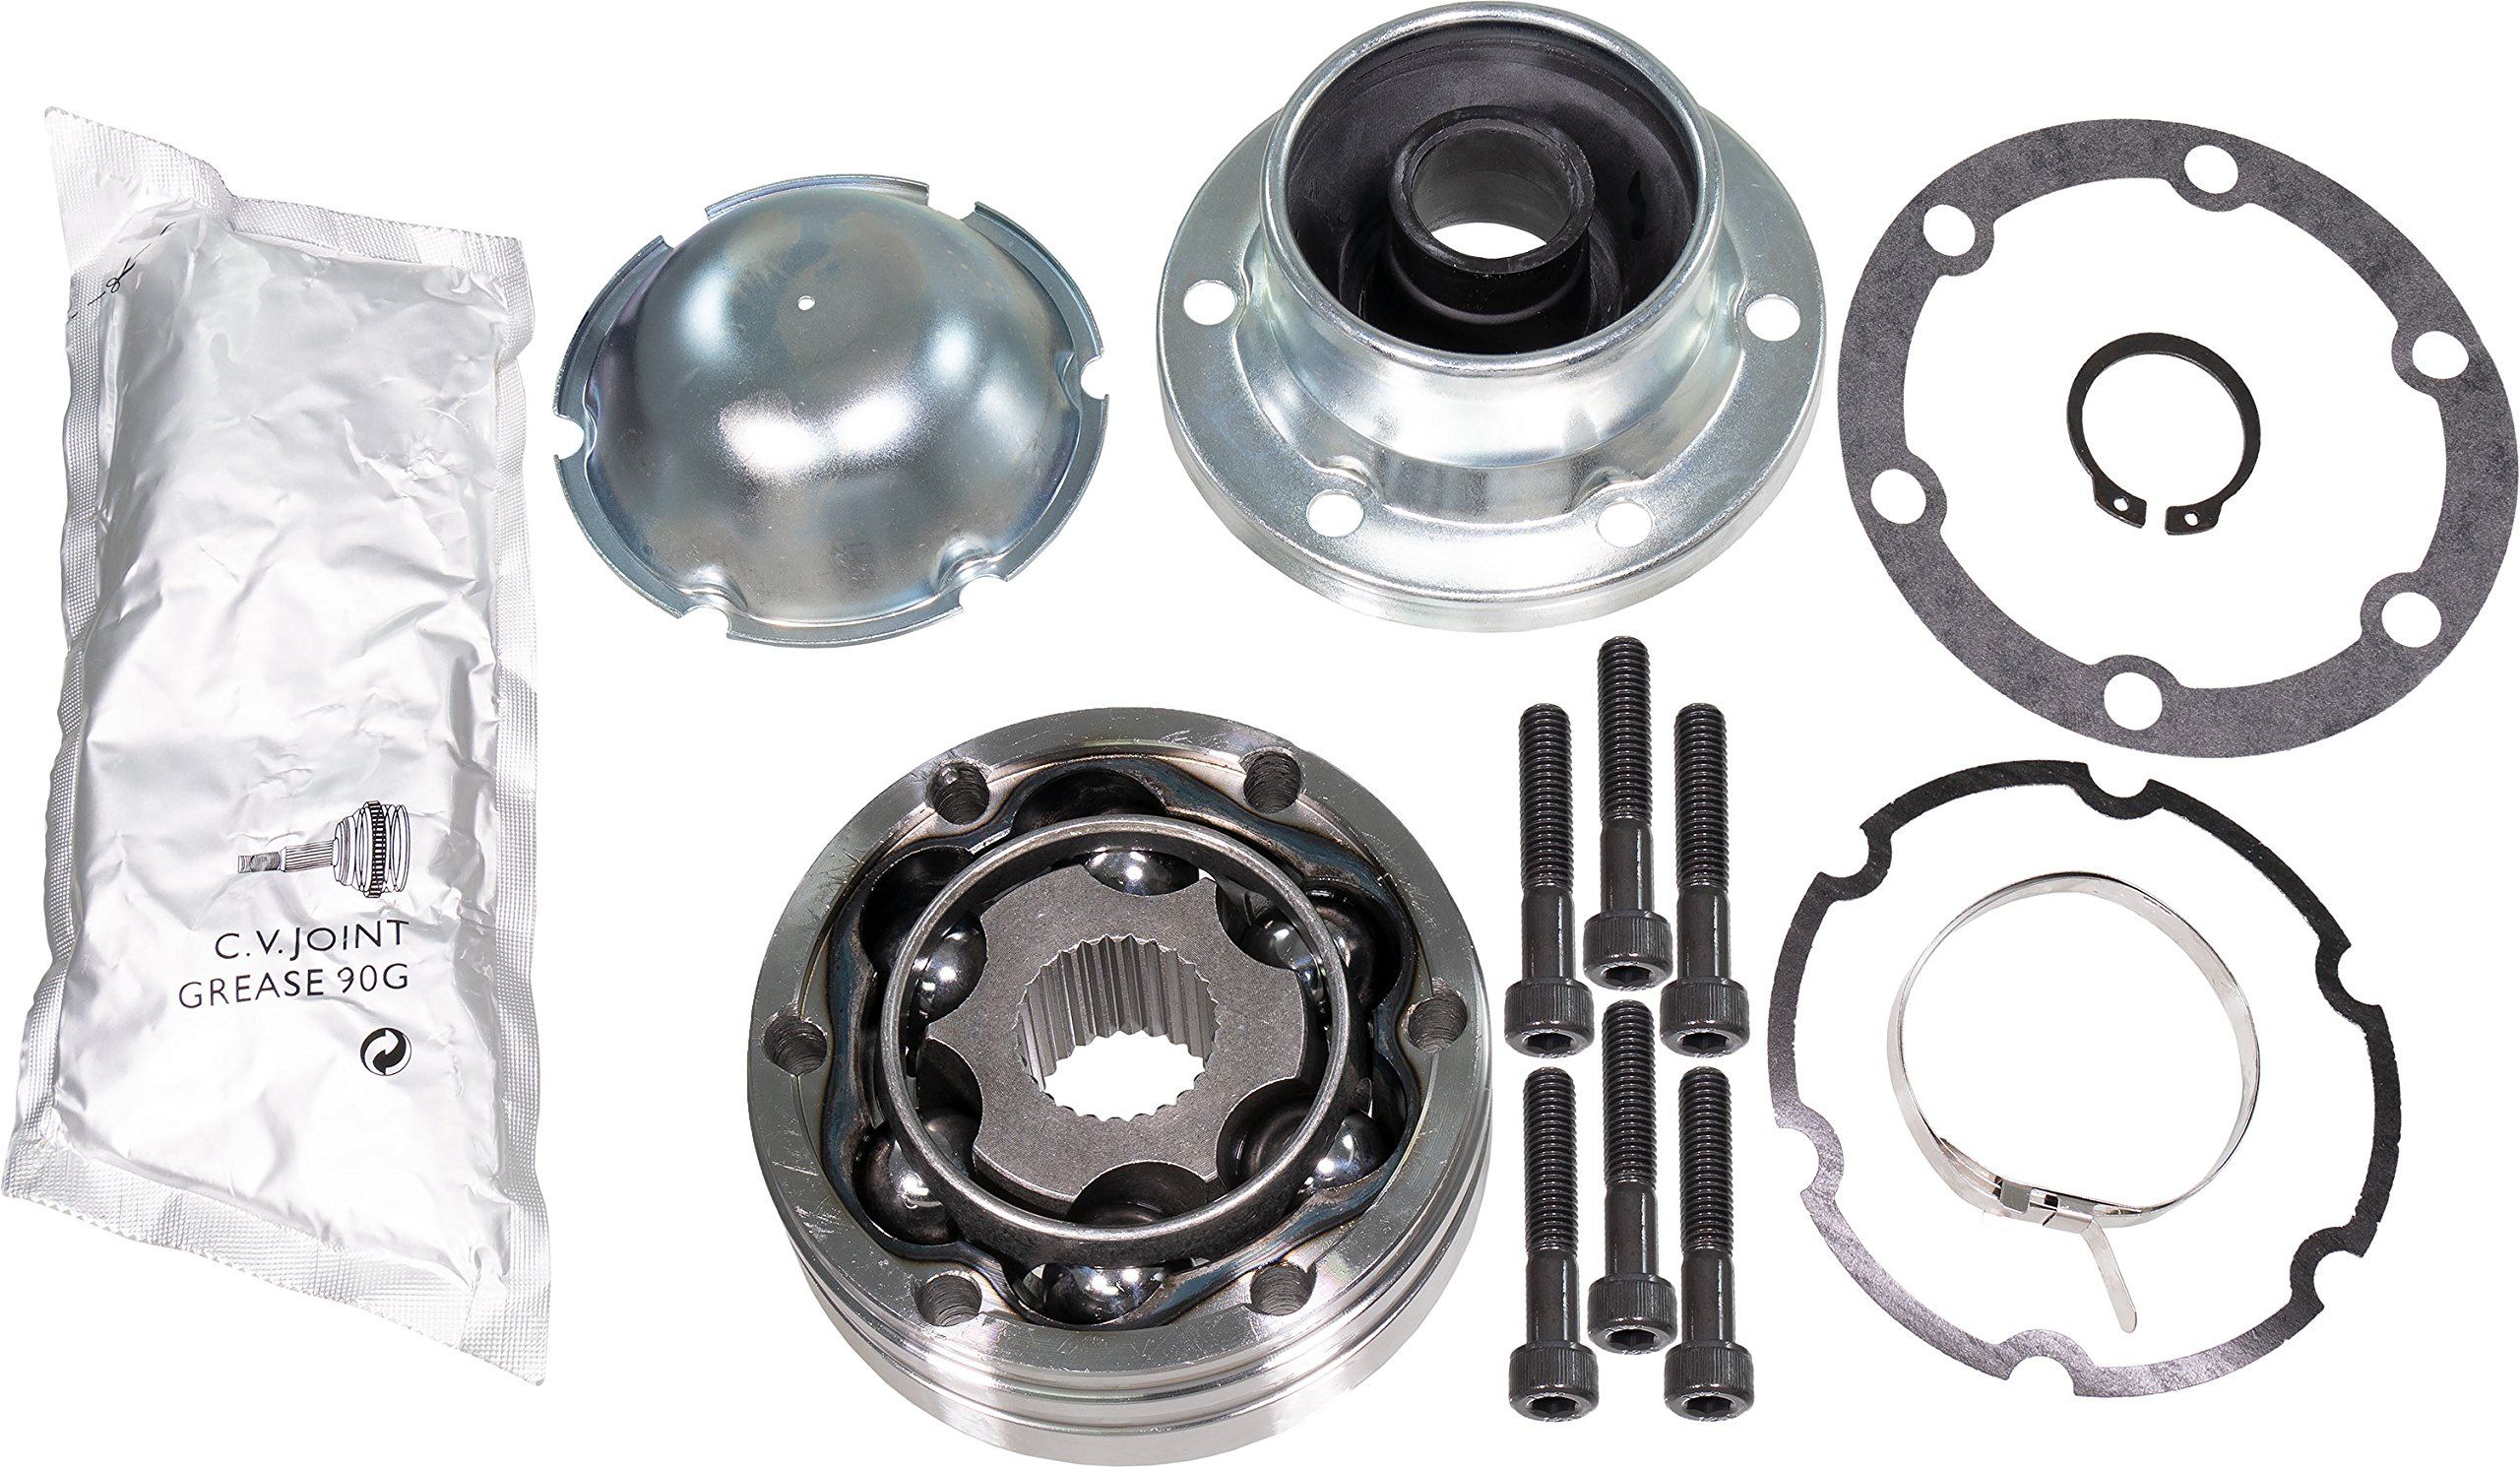 APDTY 043312 Front Driveshaft Propeller Drive Shaft CV Joint Kit Fits Select Explorer Ranger Mountaineer Aviator B3000 B4000 (Transfer Case Side; Replaces 1L2Z-4A376-AA, XL2Z-4A376-AA)